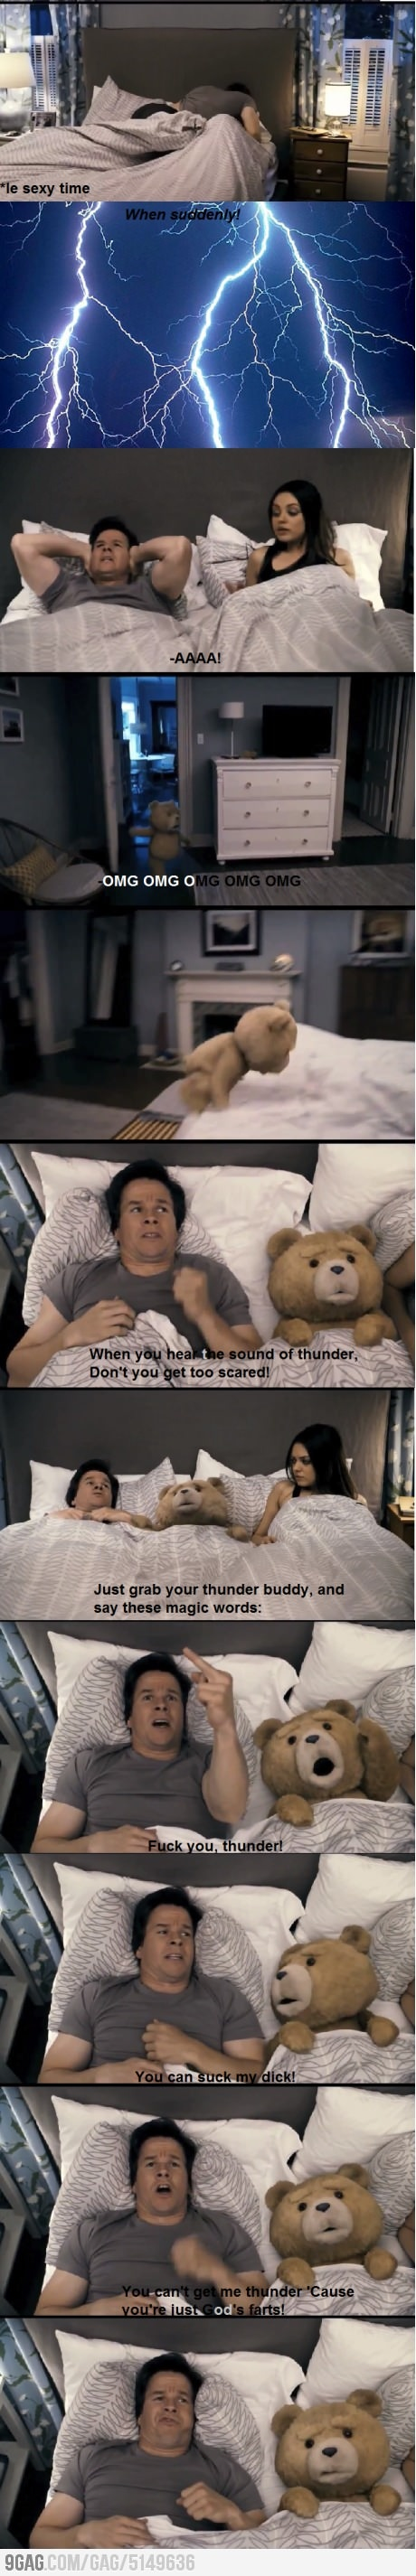 Fucking awesome movie!!! Thunder buddies for life!!